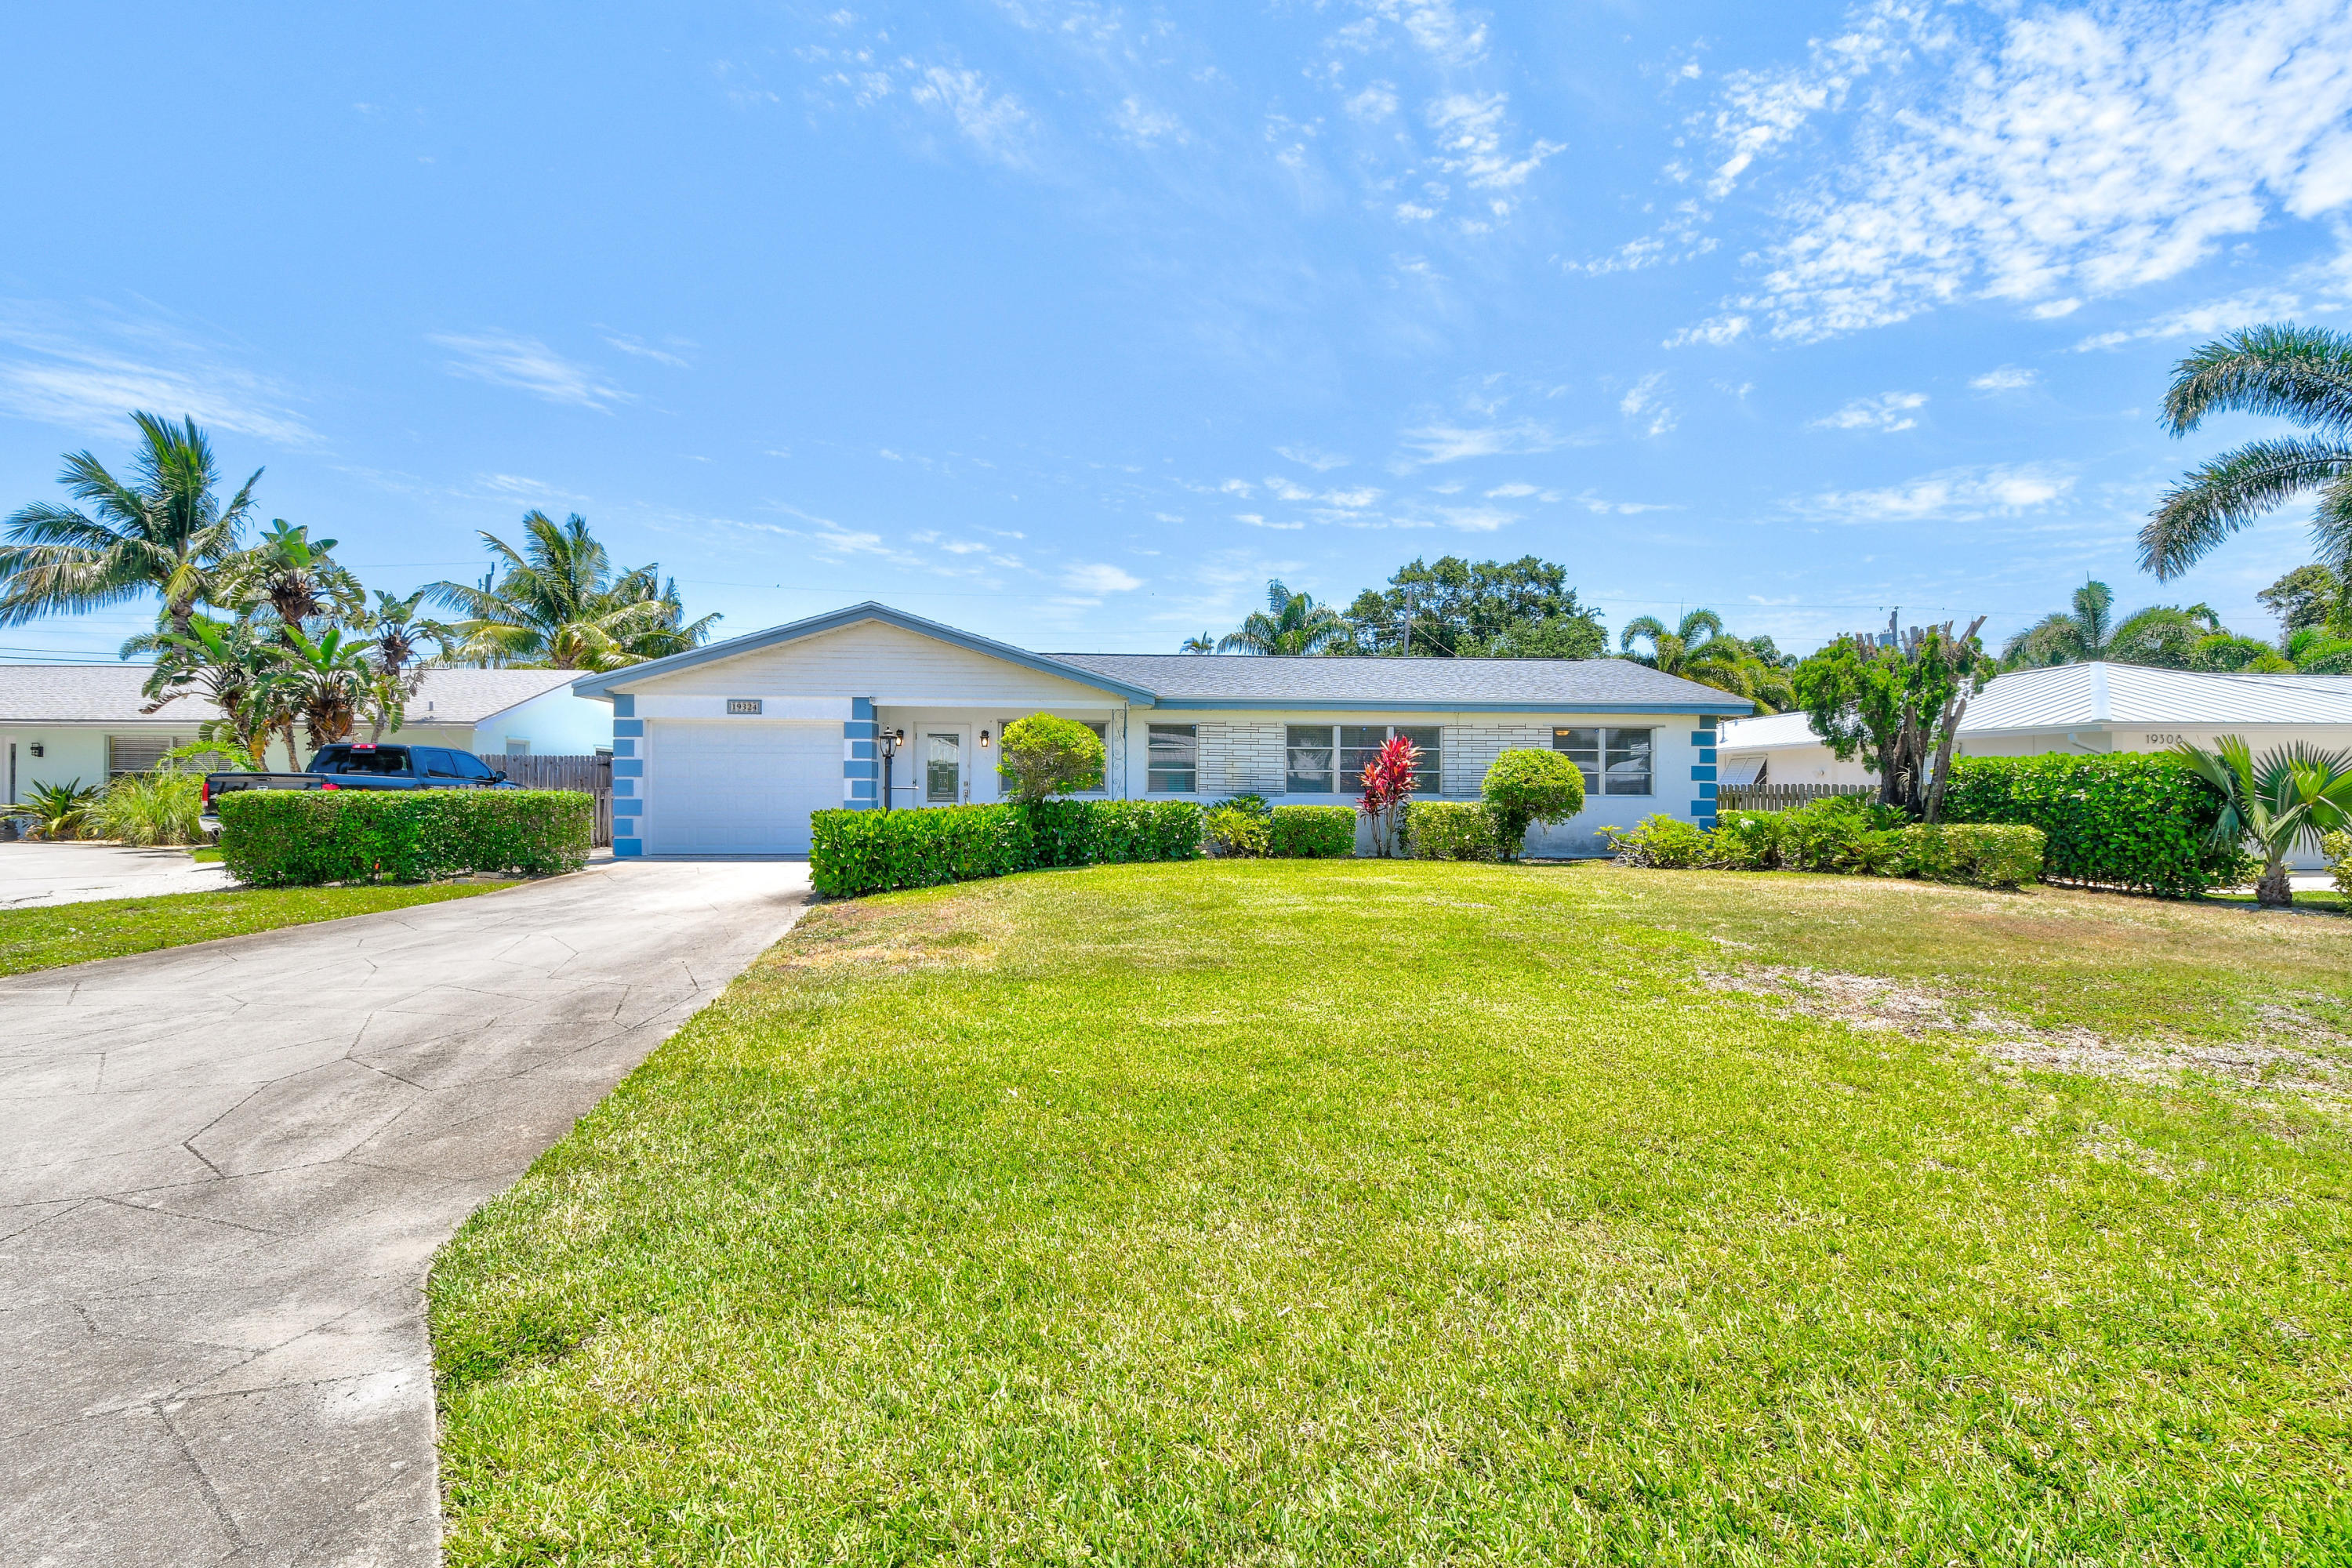 Highly desired 3 bedroom 2 bathroom CBS home in Bermuda Terrace. Enjoy water access via rare boating community which offers private boat ramp, docks, and dry storage with electric, water, tiki hut, picnic area and beach for swimming. Enjoy the spacious backyard, close to the town of Tequesta and Jupiter. HOA only mandatory for access to dock and storage!